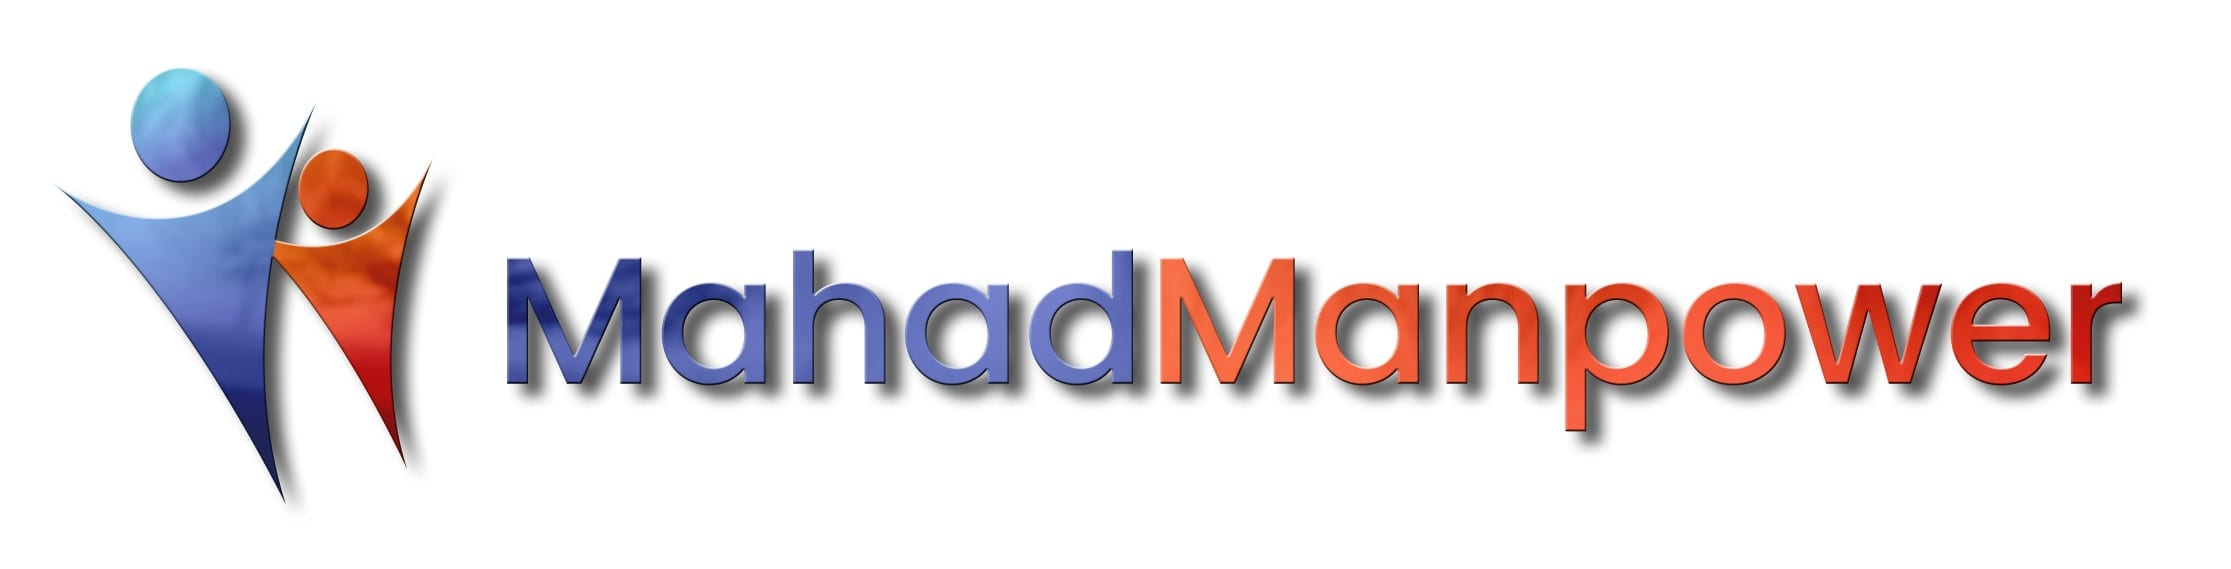 Mahadjobs - Jobs in Middle East